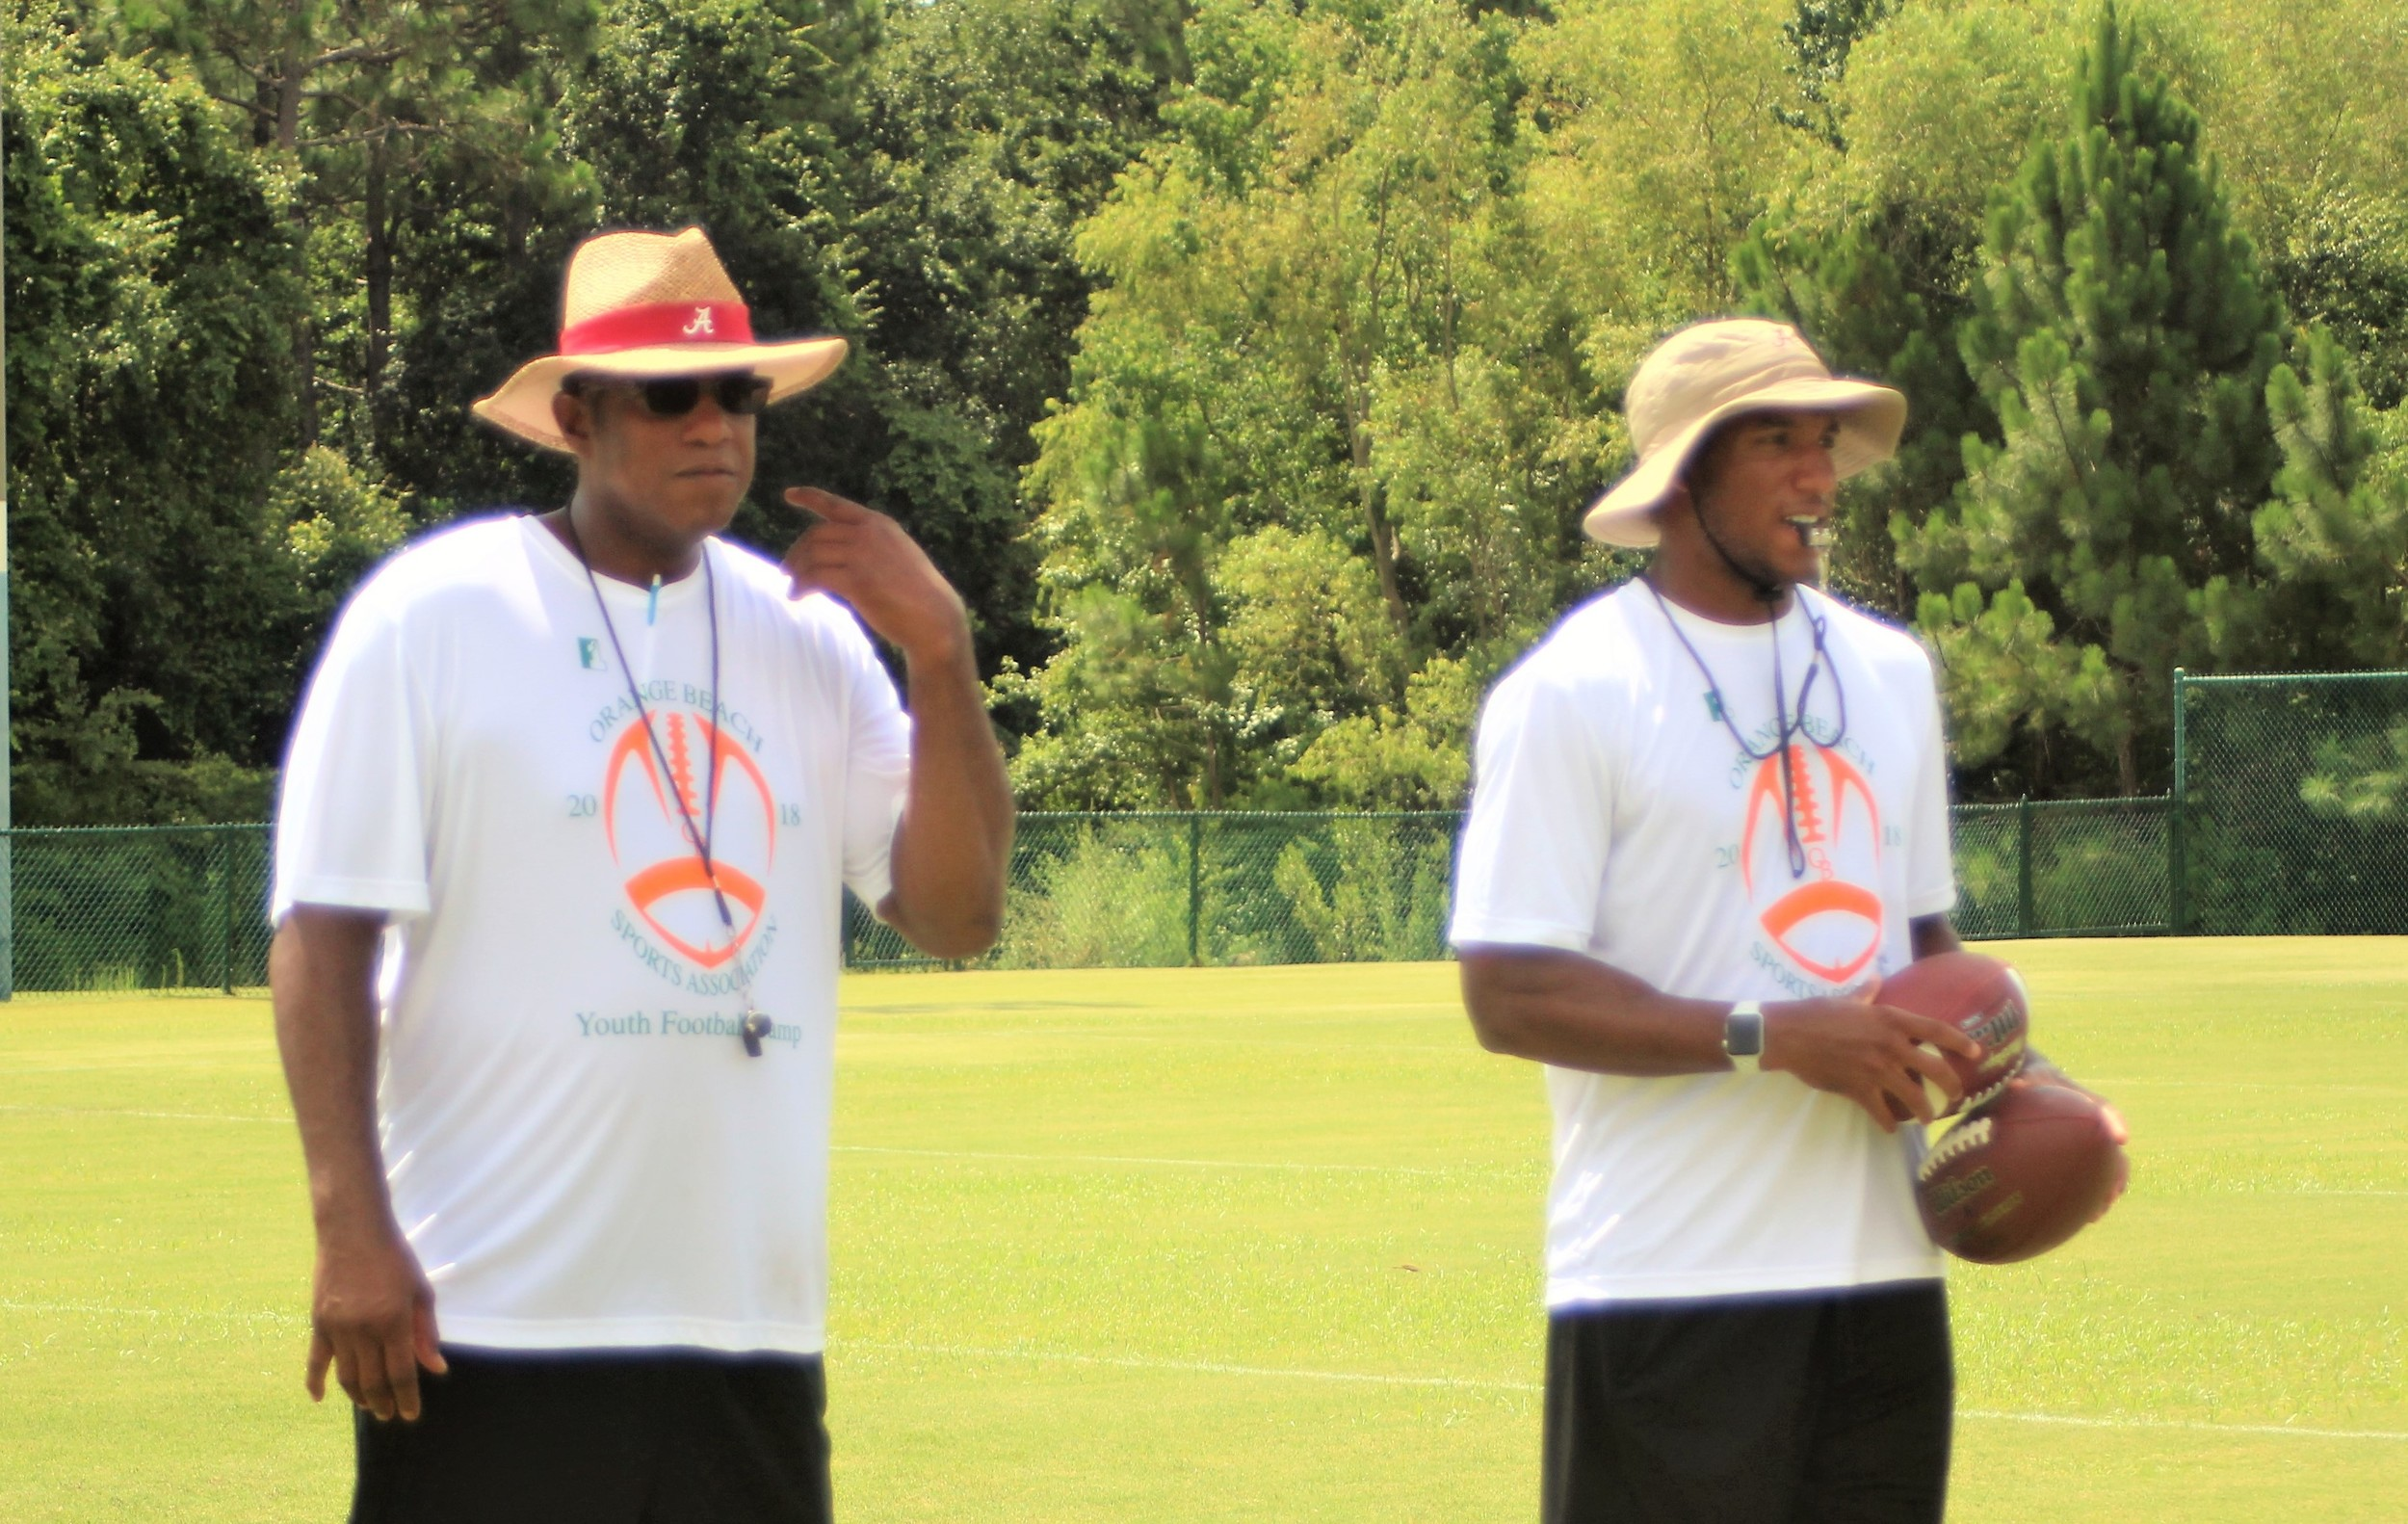 Bobby Humphrey, left and son Marlon Humphrey give instructions to campers at Orange Beach.